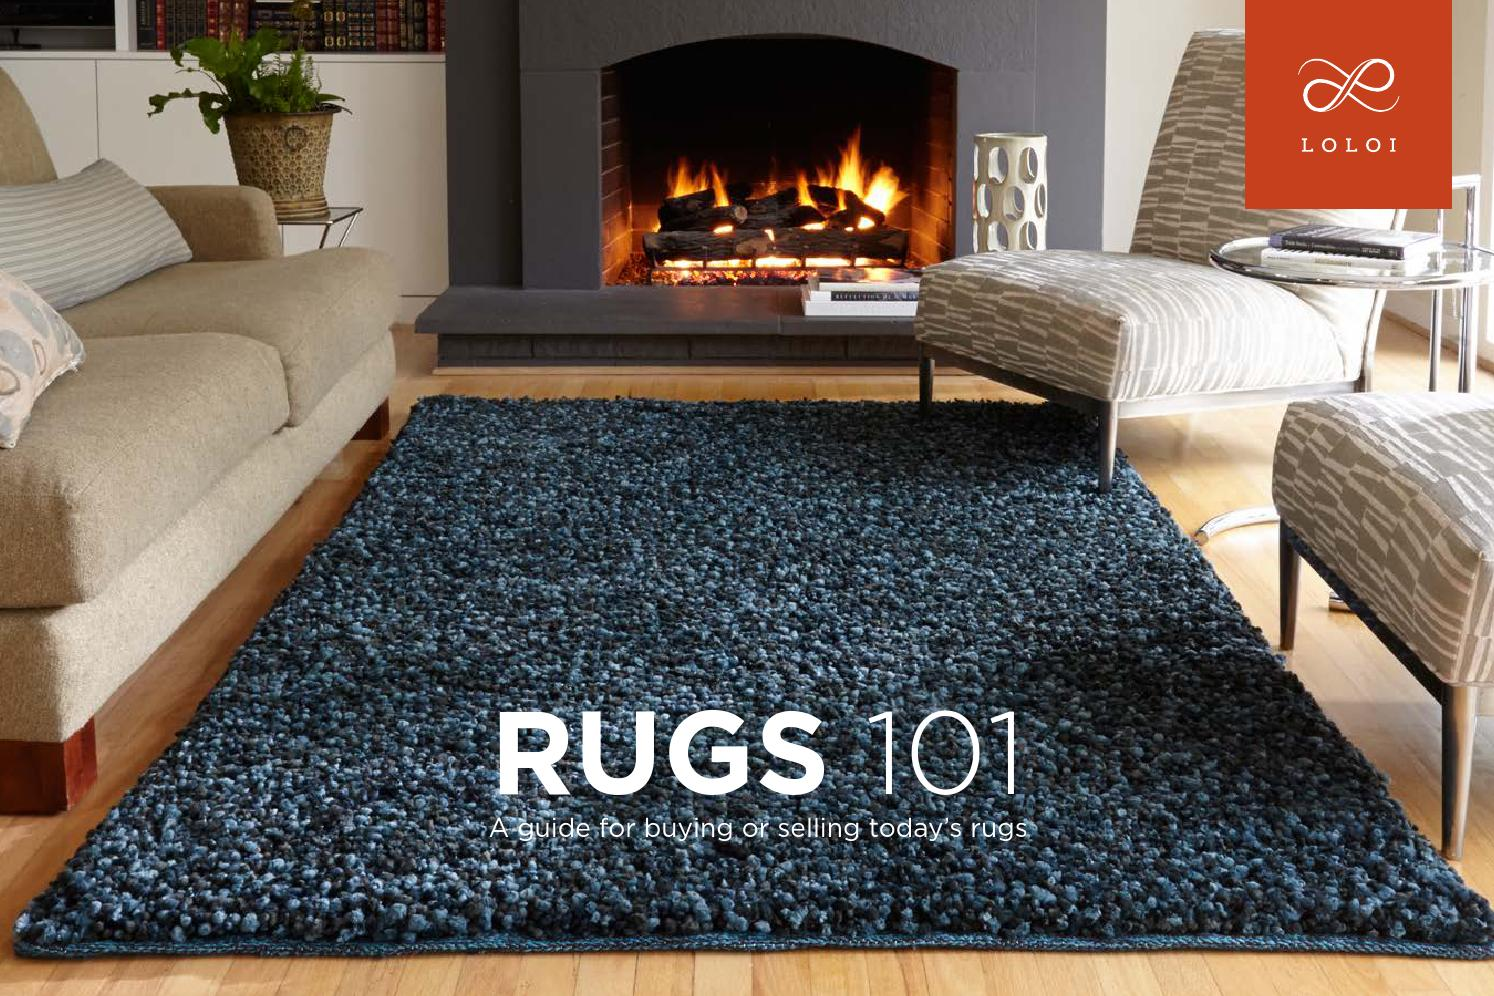 how to clean big living room rugs interior design ideas loloi 101 by issuu